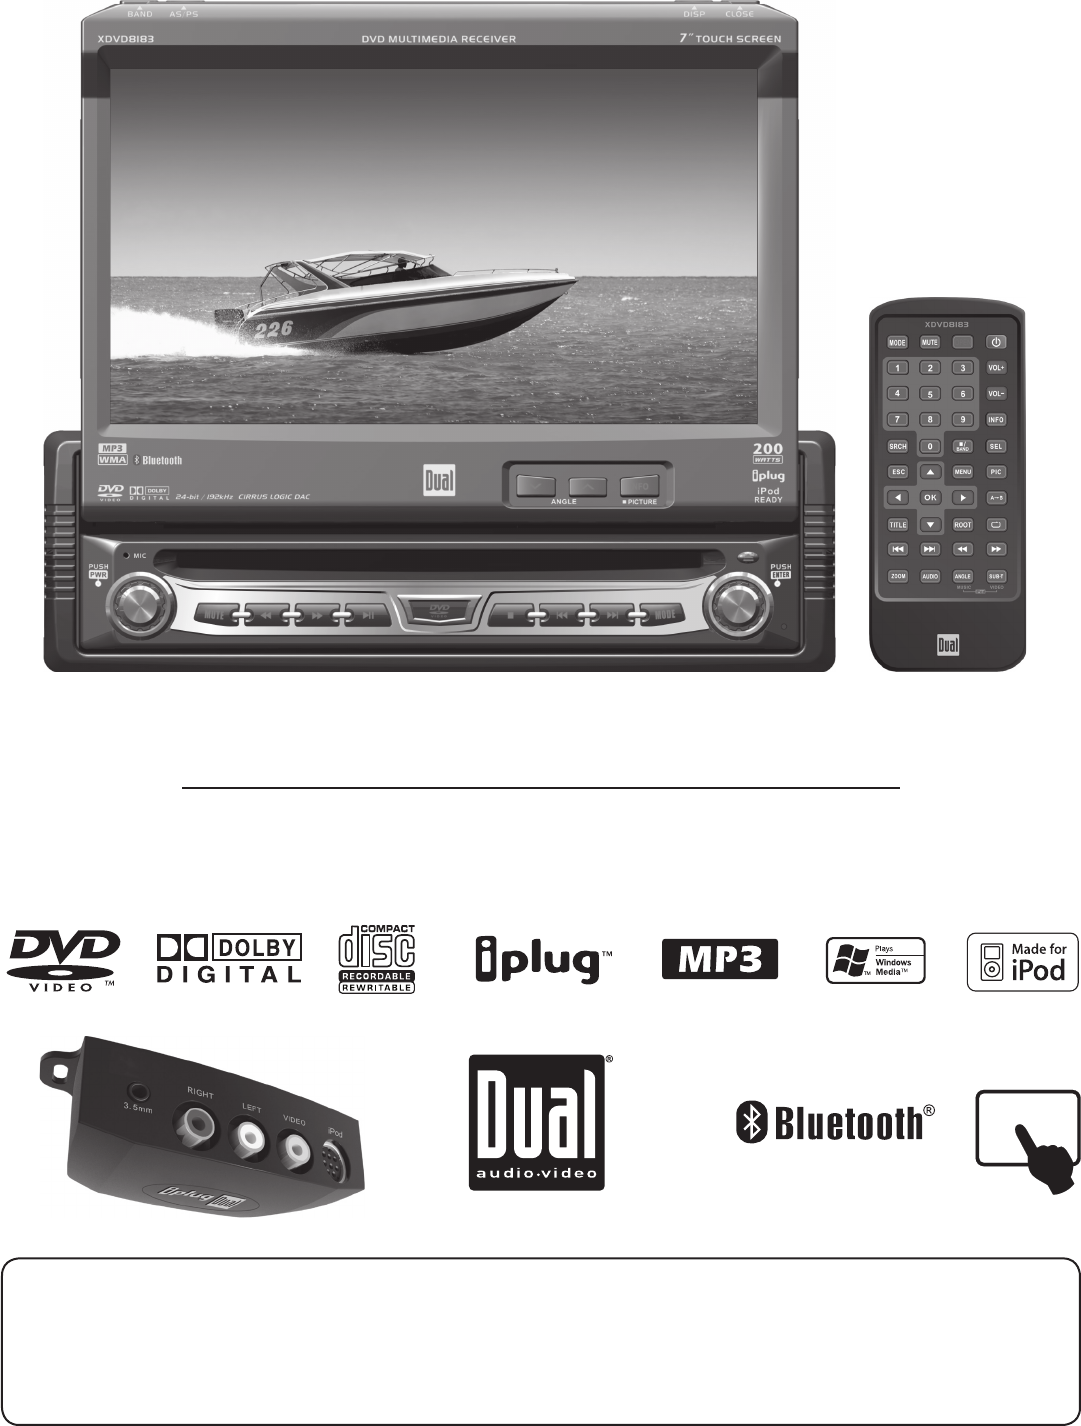 Dual Xdvd8183 Wiring Diagram Model Radio Block And Schematic Harness Portable Dvd Player User Guide Manualsonline Com Rh Portablemedia Xd7500 Sony Car Stereo